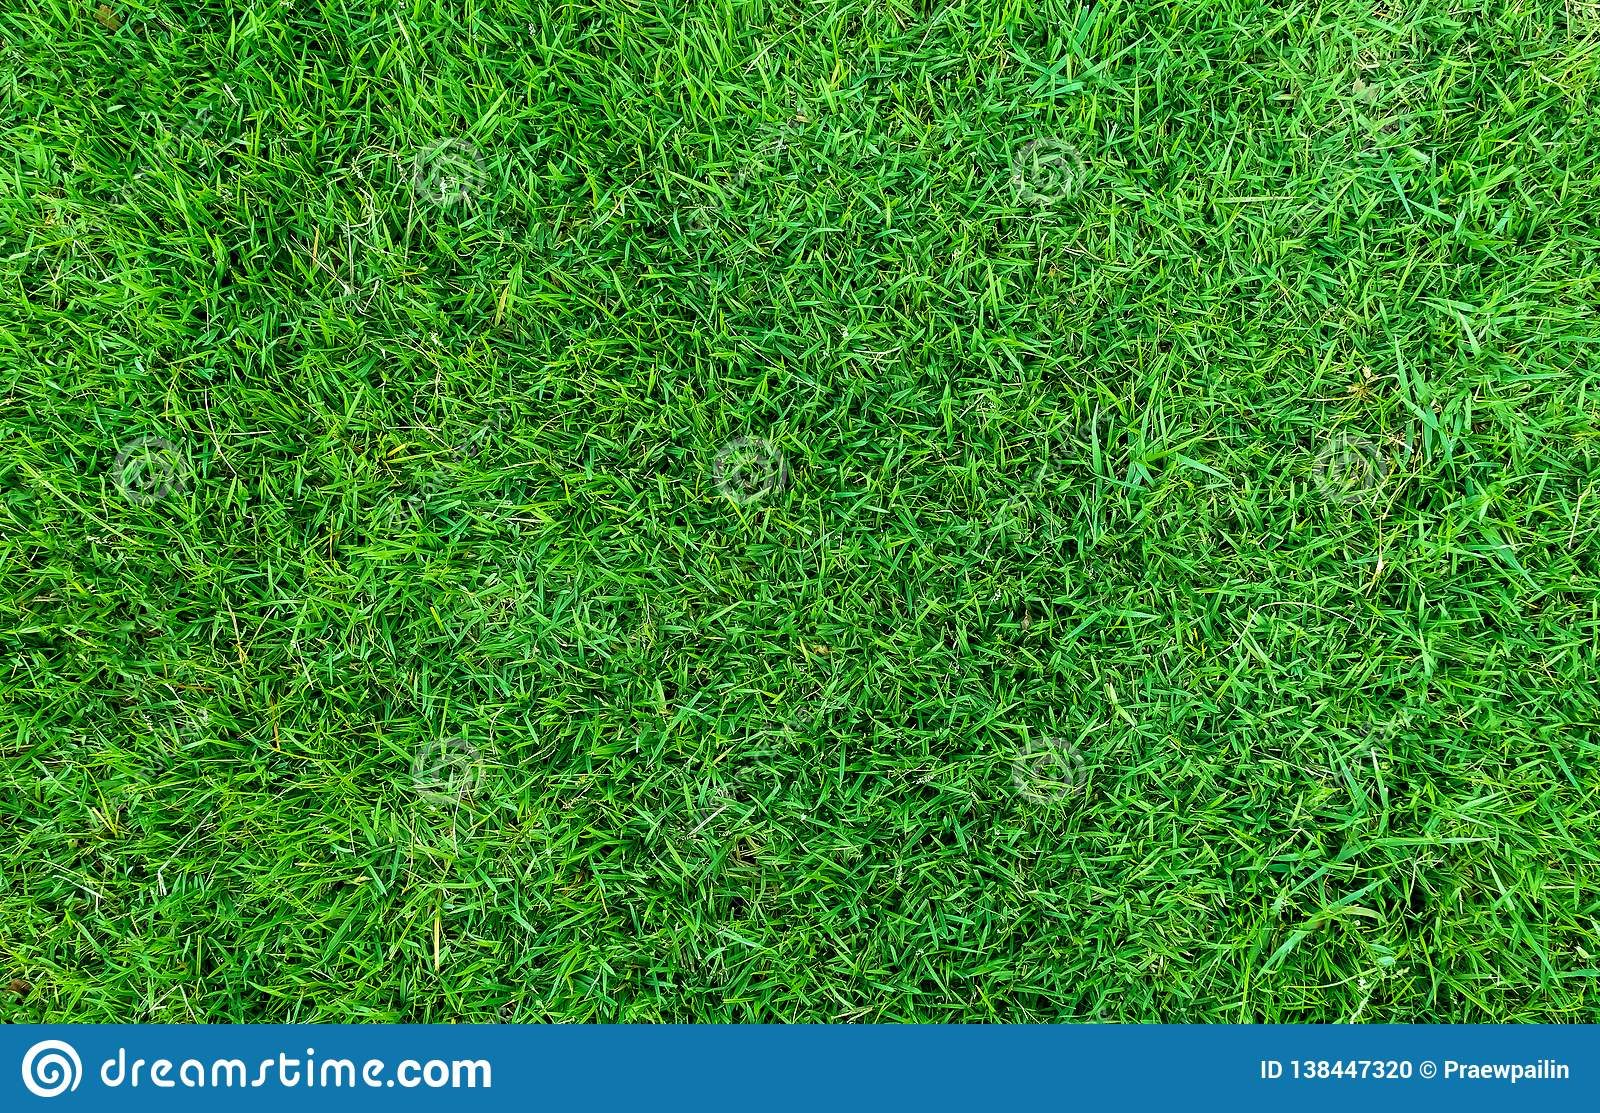 Green grass texture for background. Green lawn pattern and texture background. Close-up